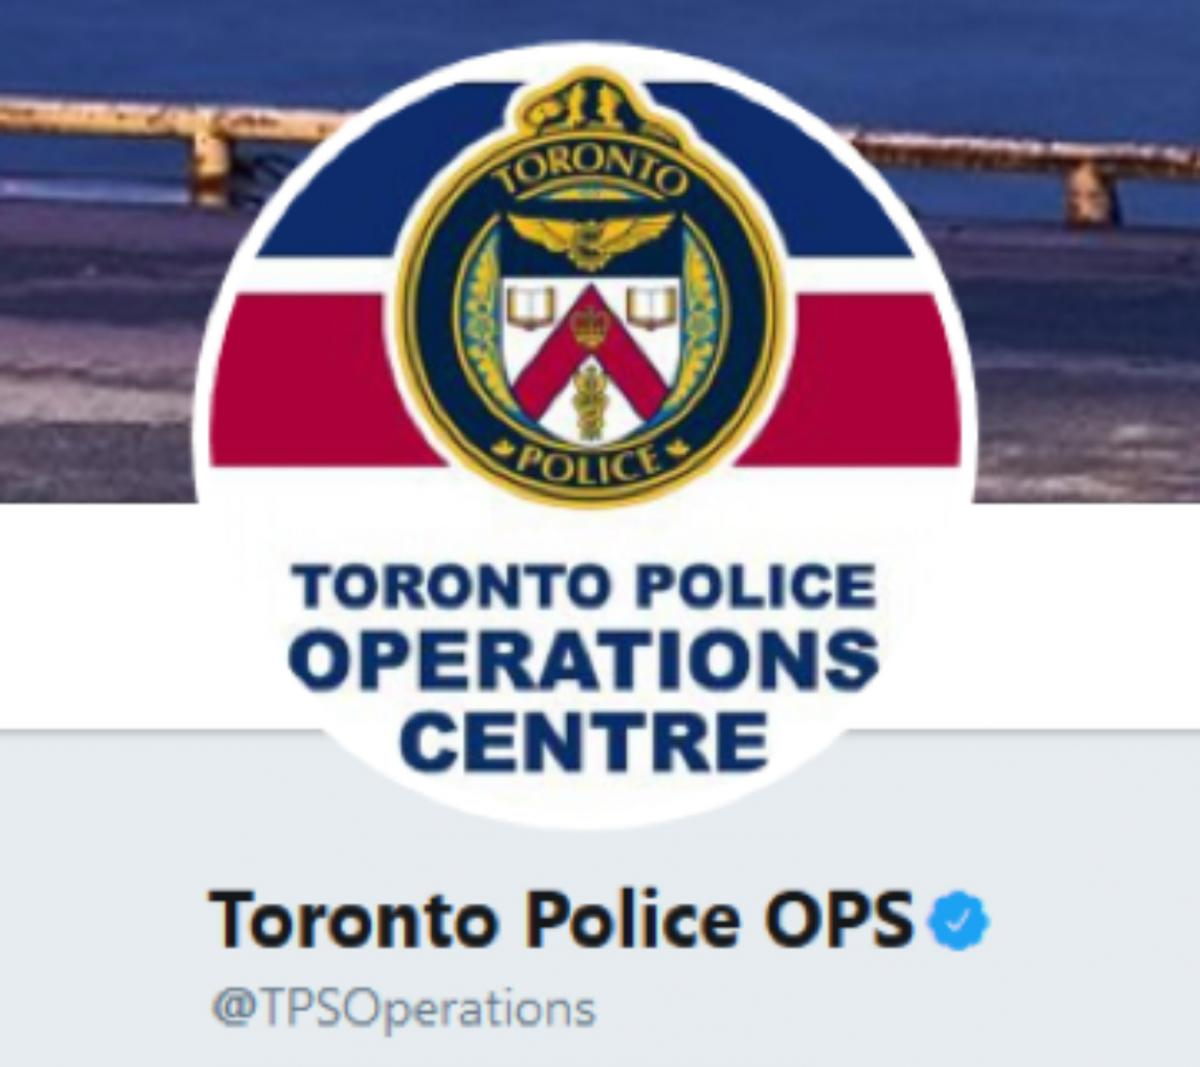 Toronto Police OPS Twitter Account